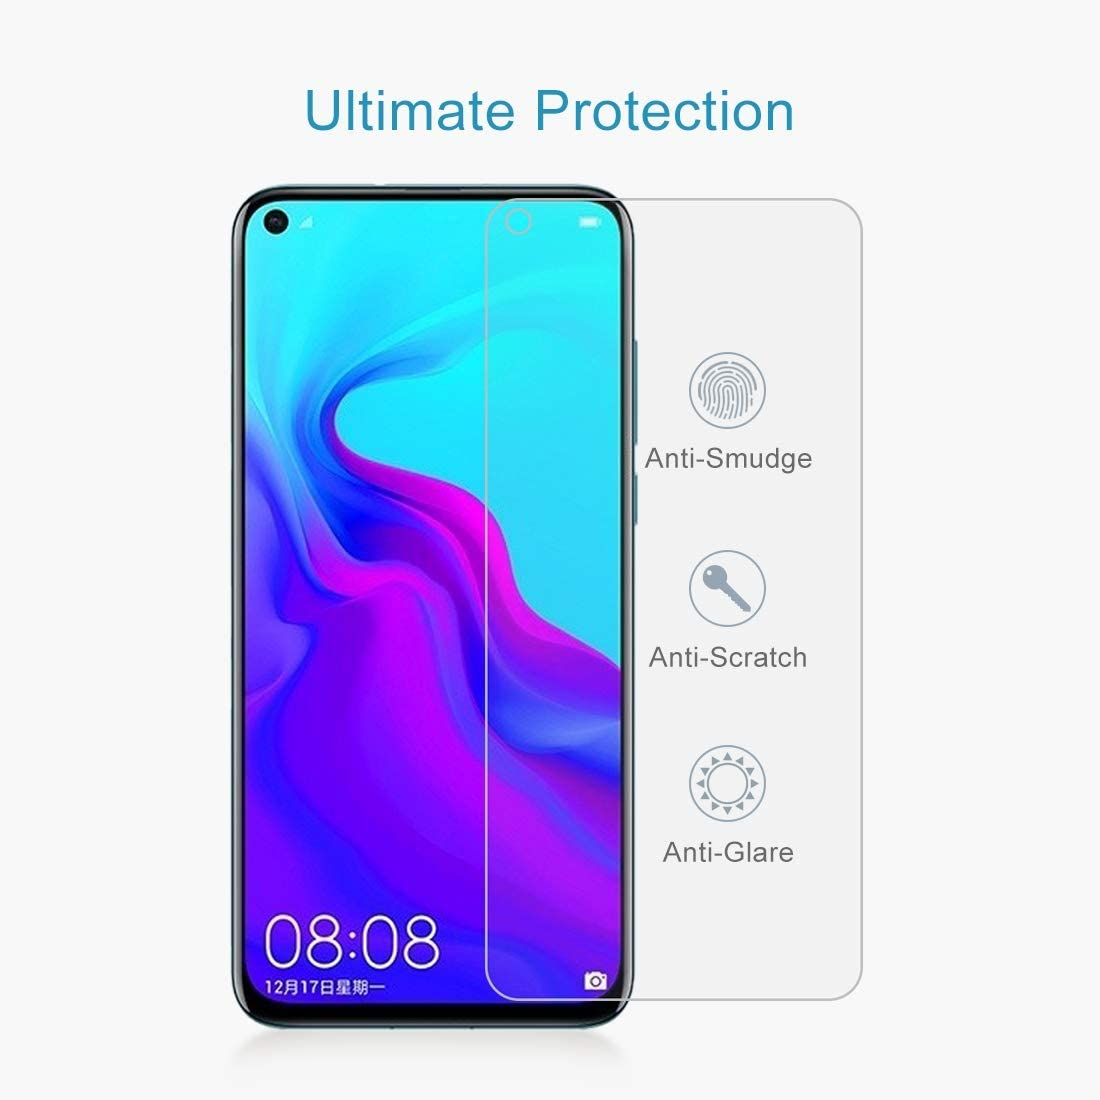 YINZHI Screen Protector Film 100 PCS 0.26mm 9H 2.5D Explosion-Proof Tempered Glass Film for Huawei Nova 4 Clear